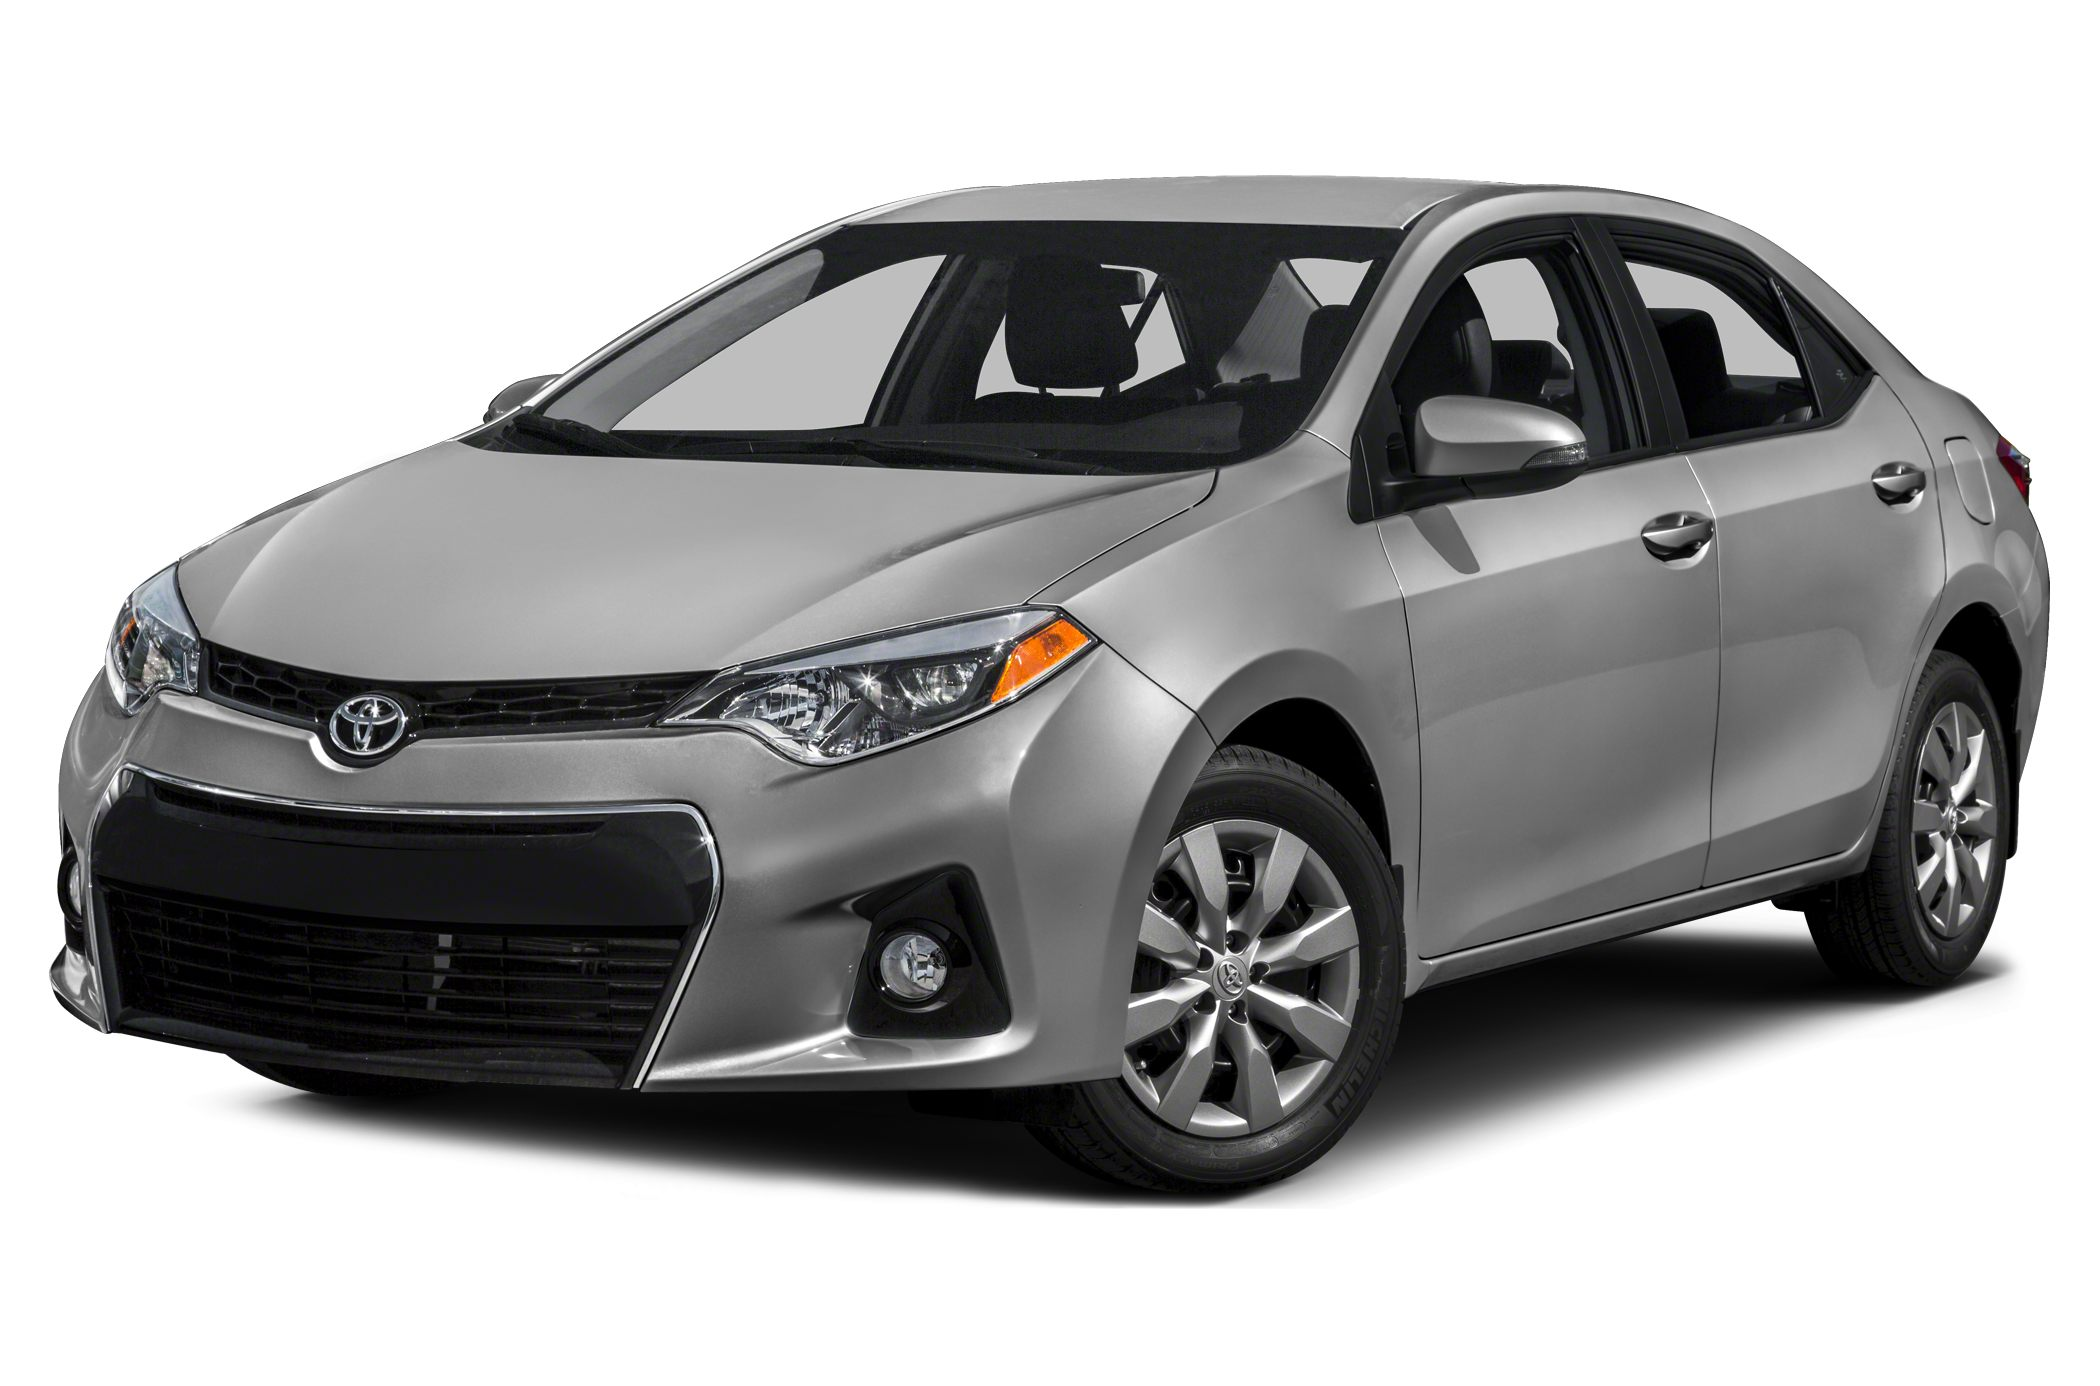 2015 Toyota Corolla S Plus Sedan for sale in Union City for $21,792 with 10 miles.